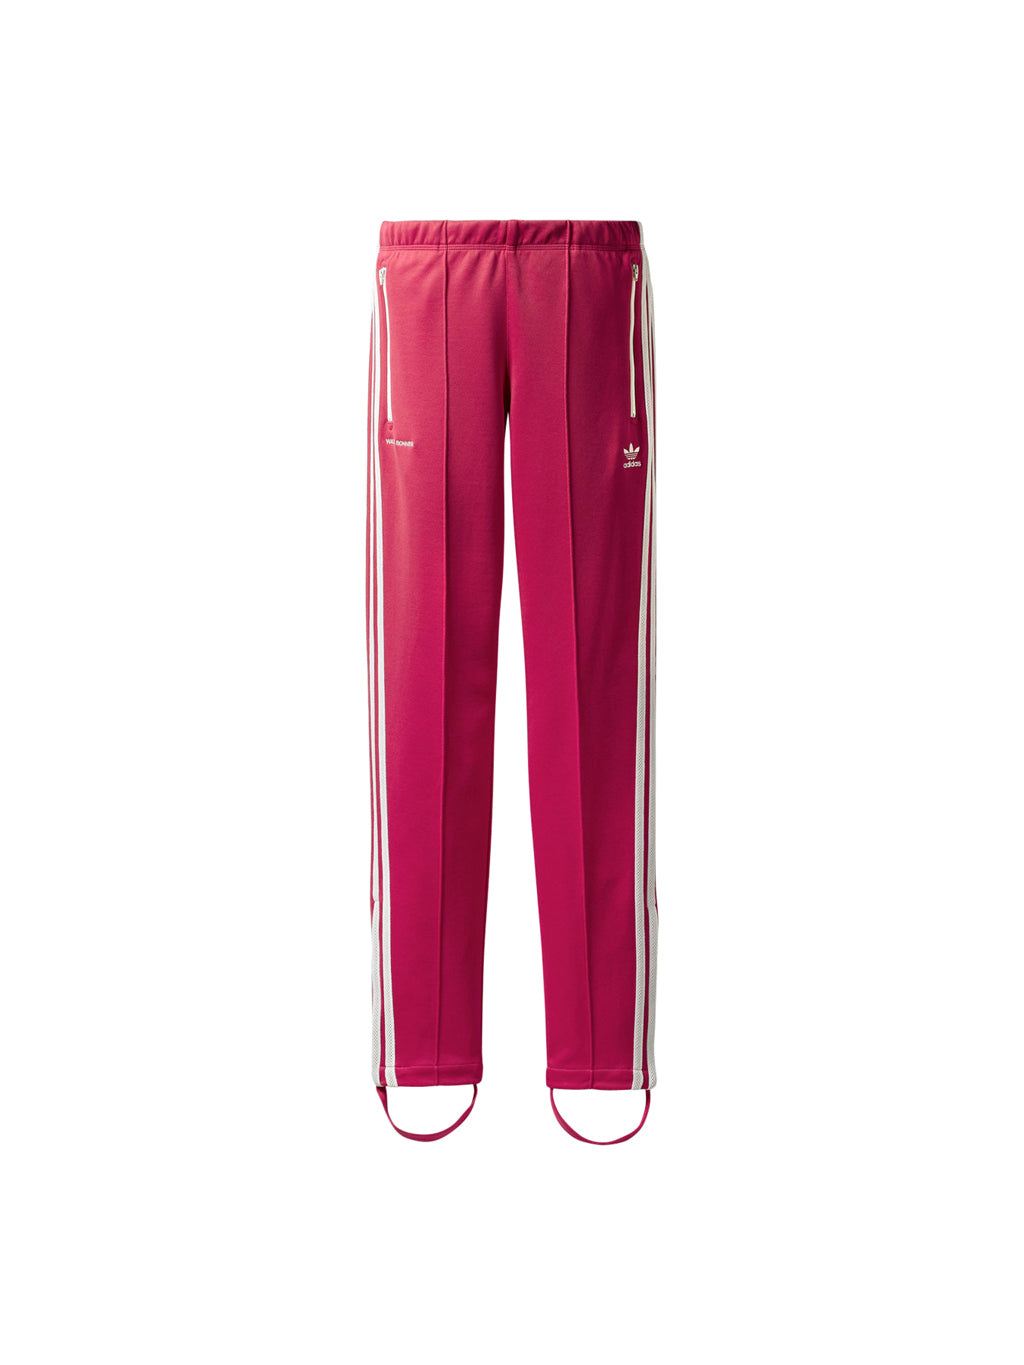 Pink X Wales Bonner 70s Striped Track Pants